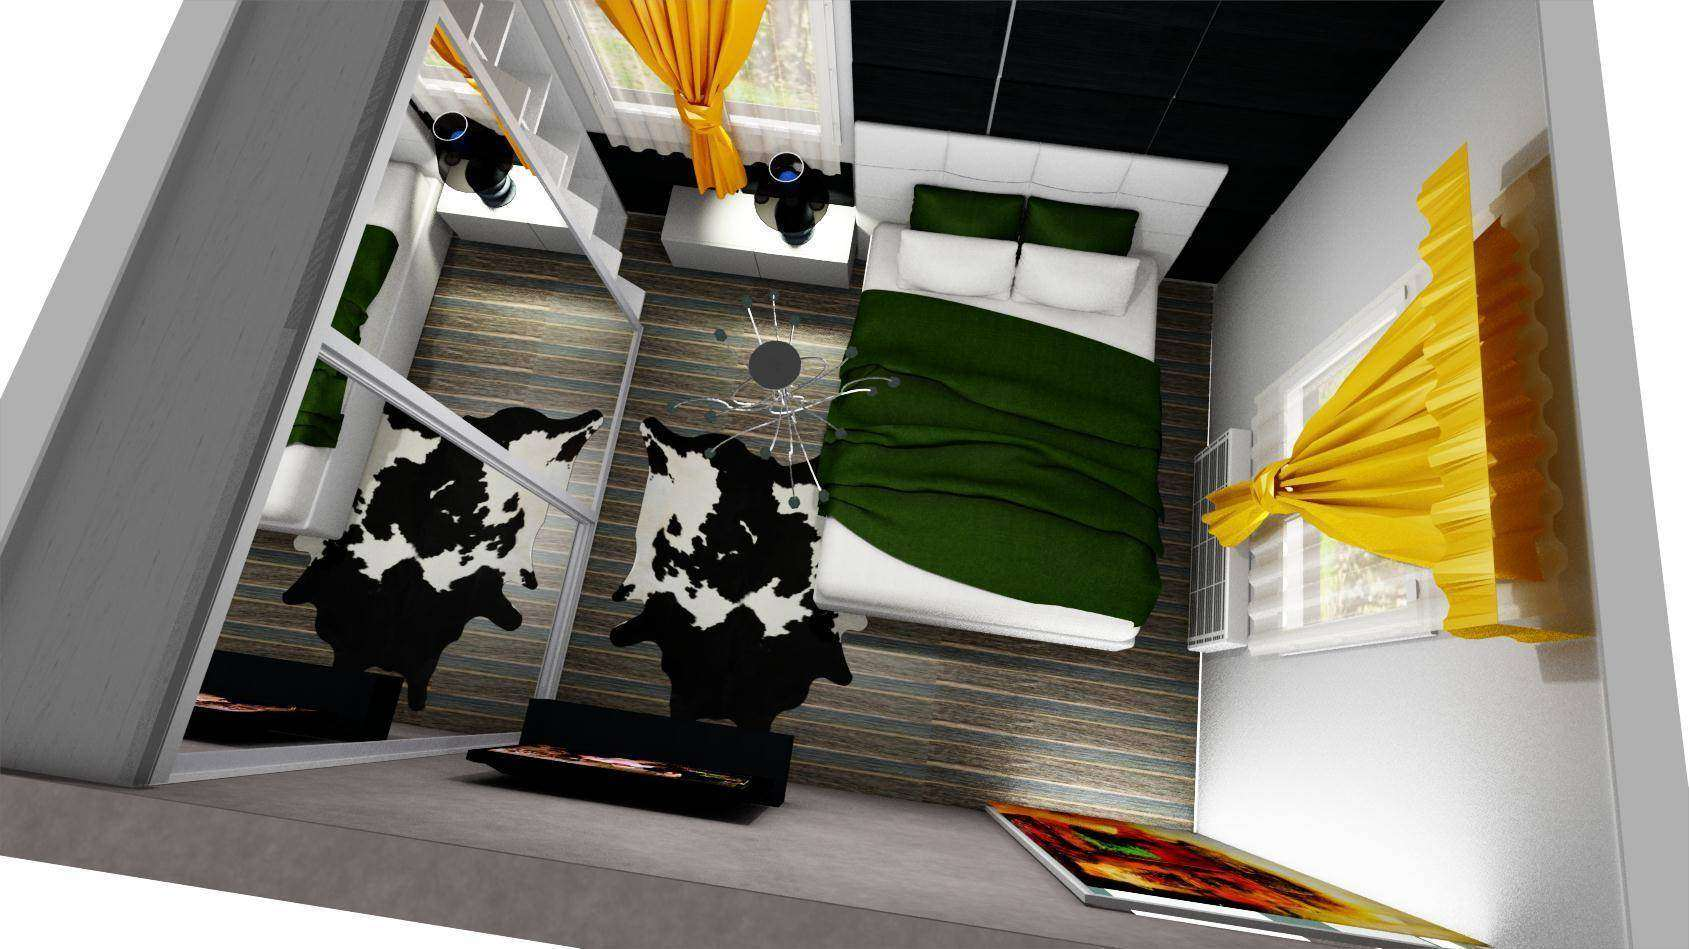 <a href=&quot;plan design interior dormitor matrimonial&quot;>design interior dormitor matrimonial<img src='http://www.unican.ro/wp-content/themes/vita/img/dreapta.png' class='pull-right hidden-xs' style='margin-right:-10px;margin-top:-10px; max-height:41px'></a>